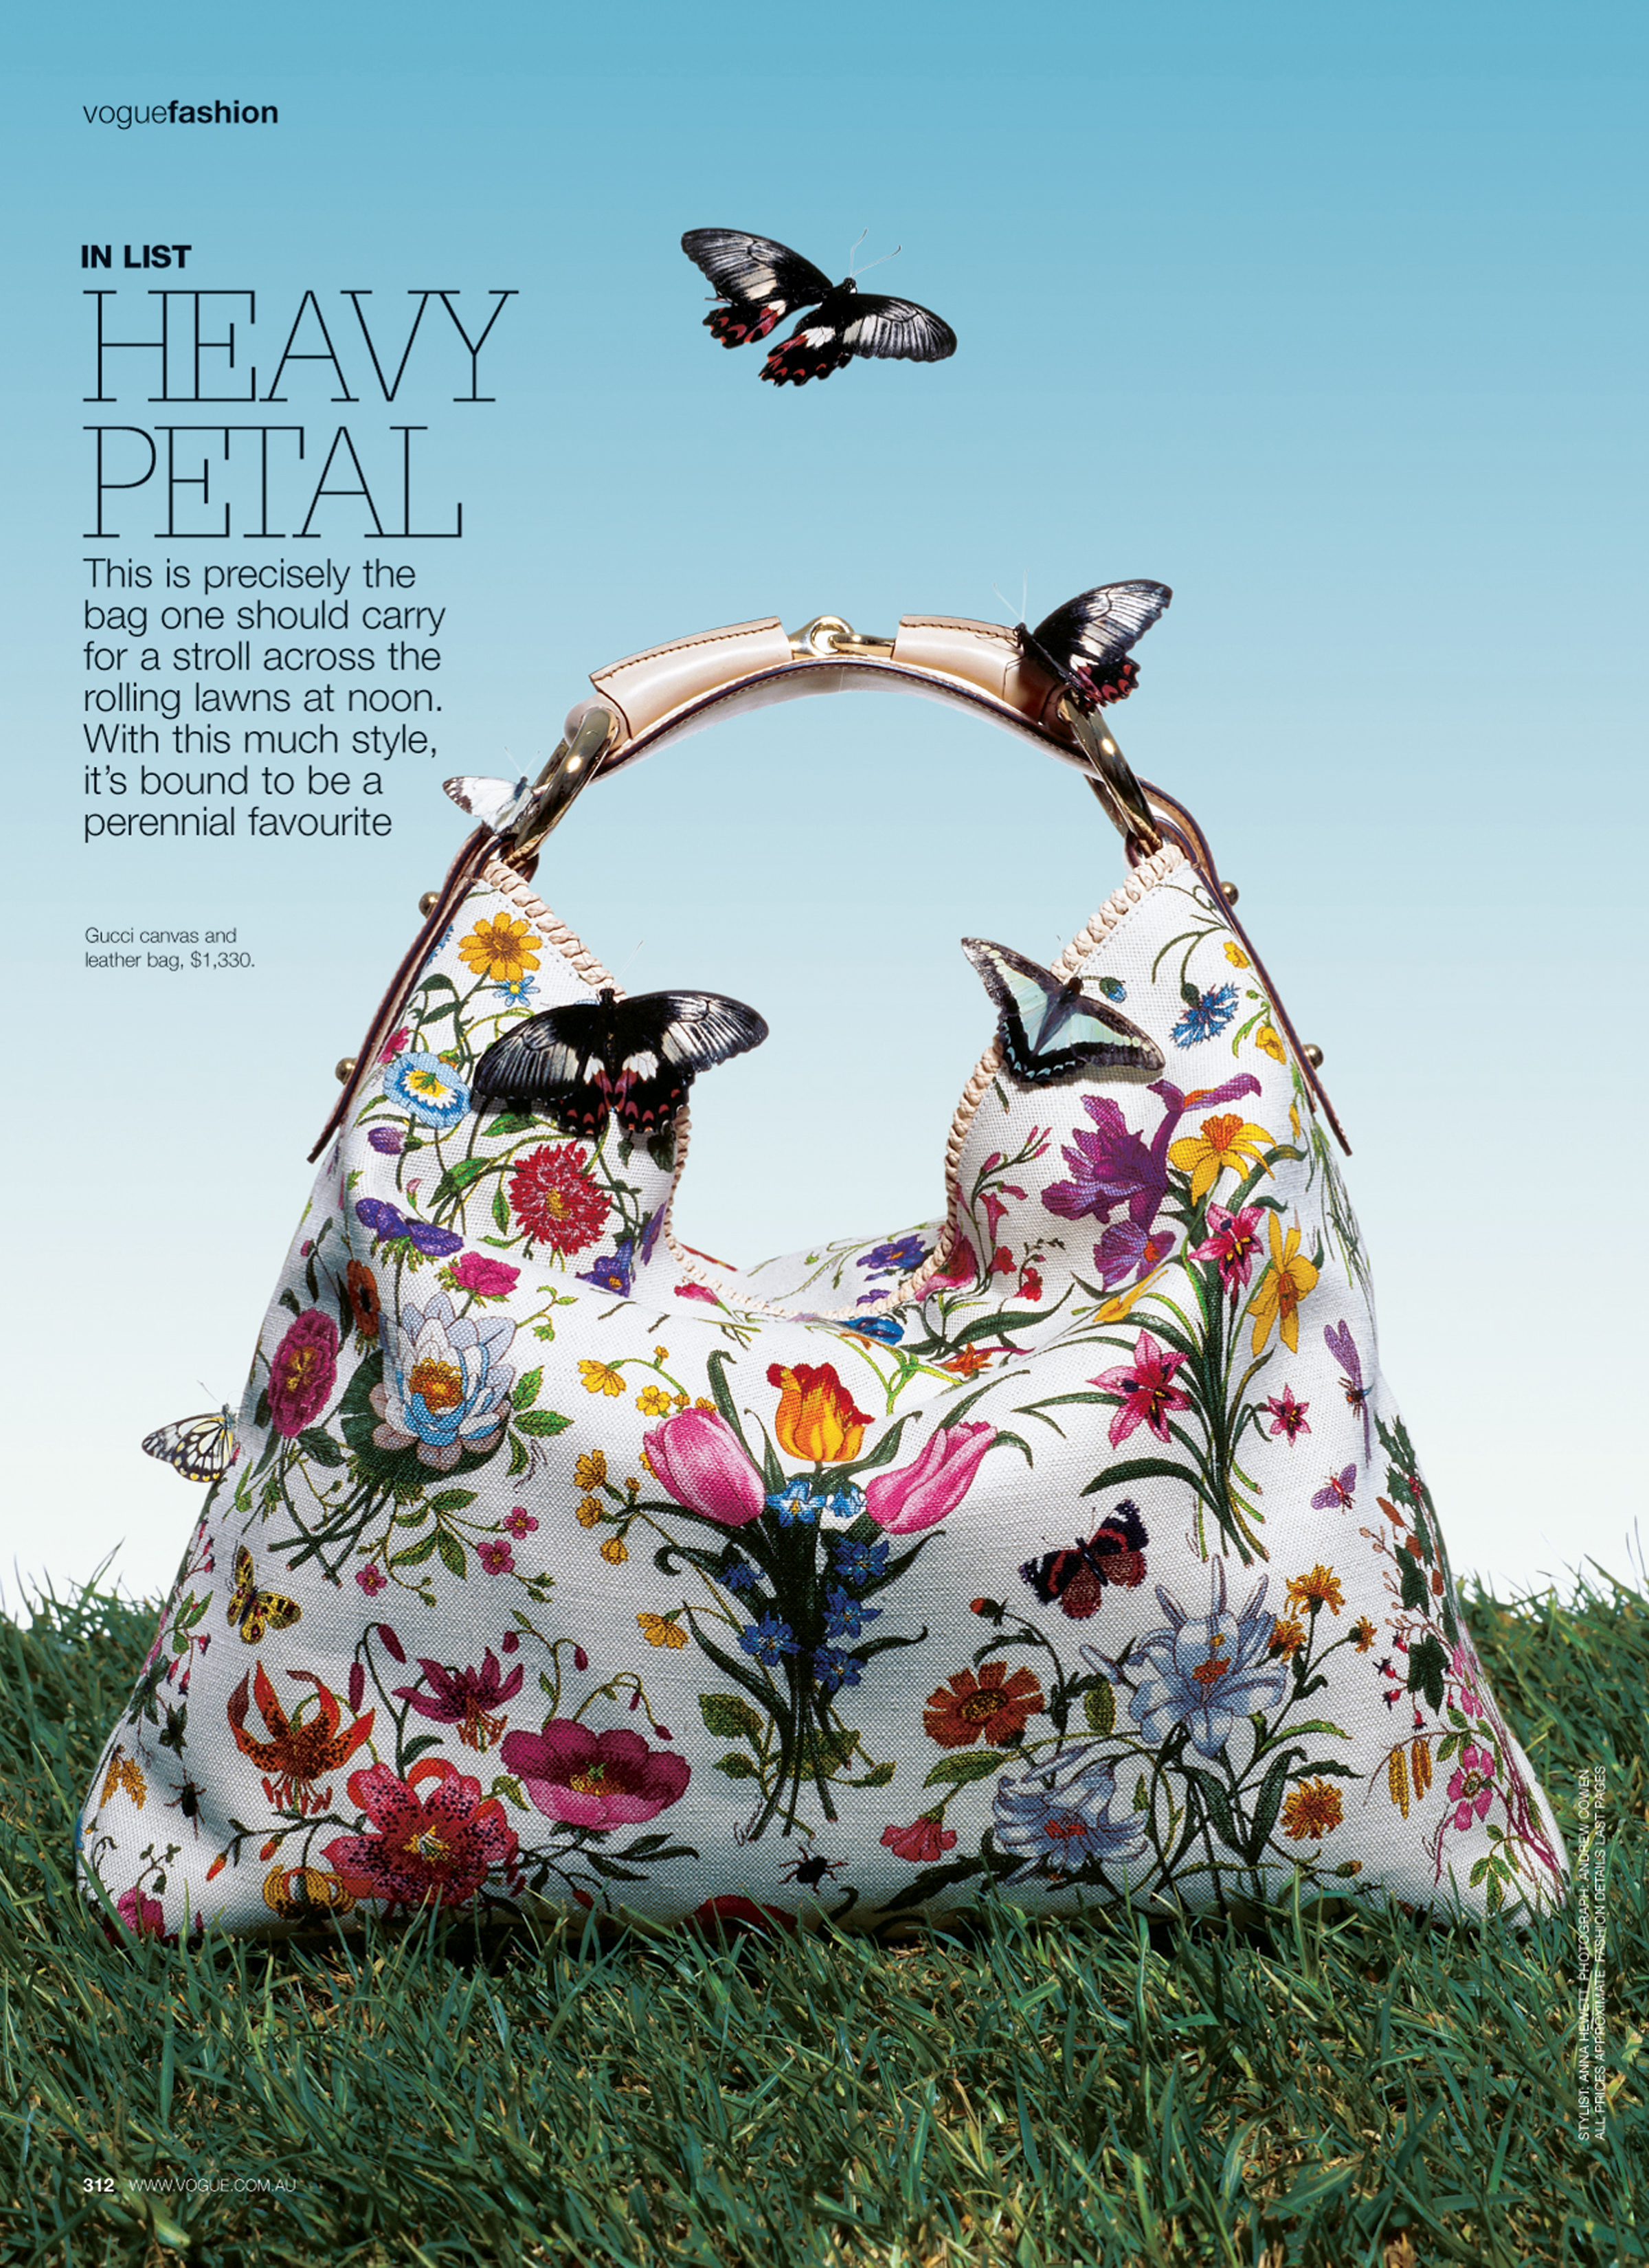 meany_editorial_052.jpg